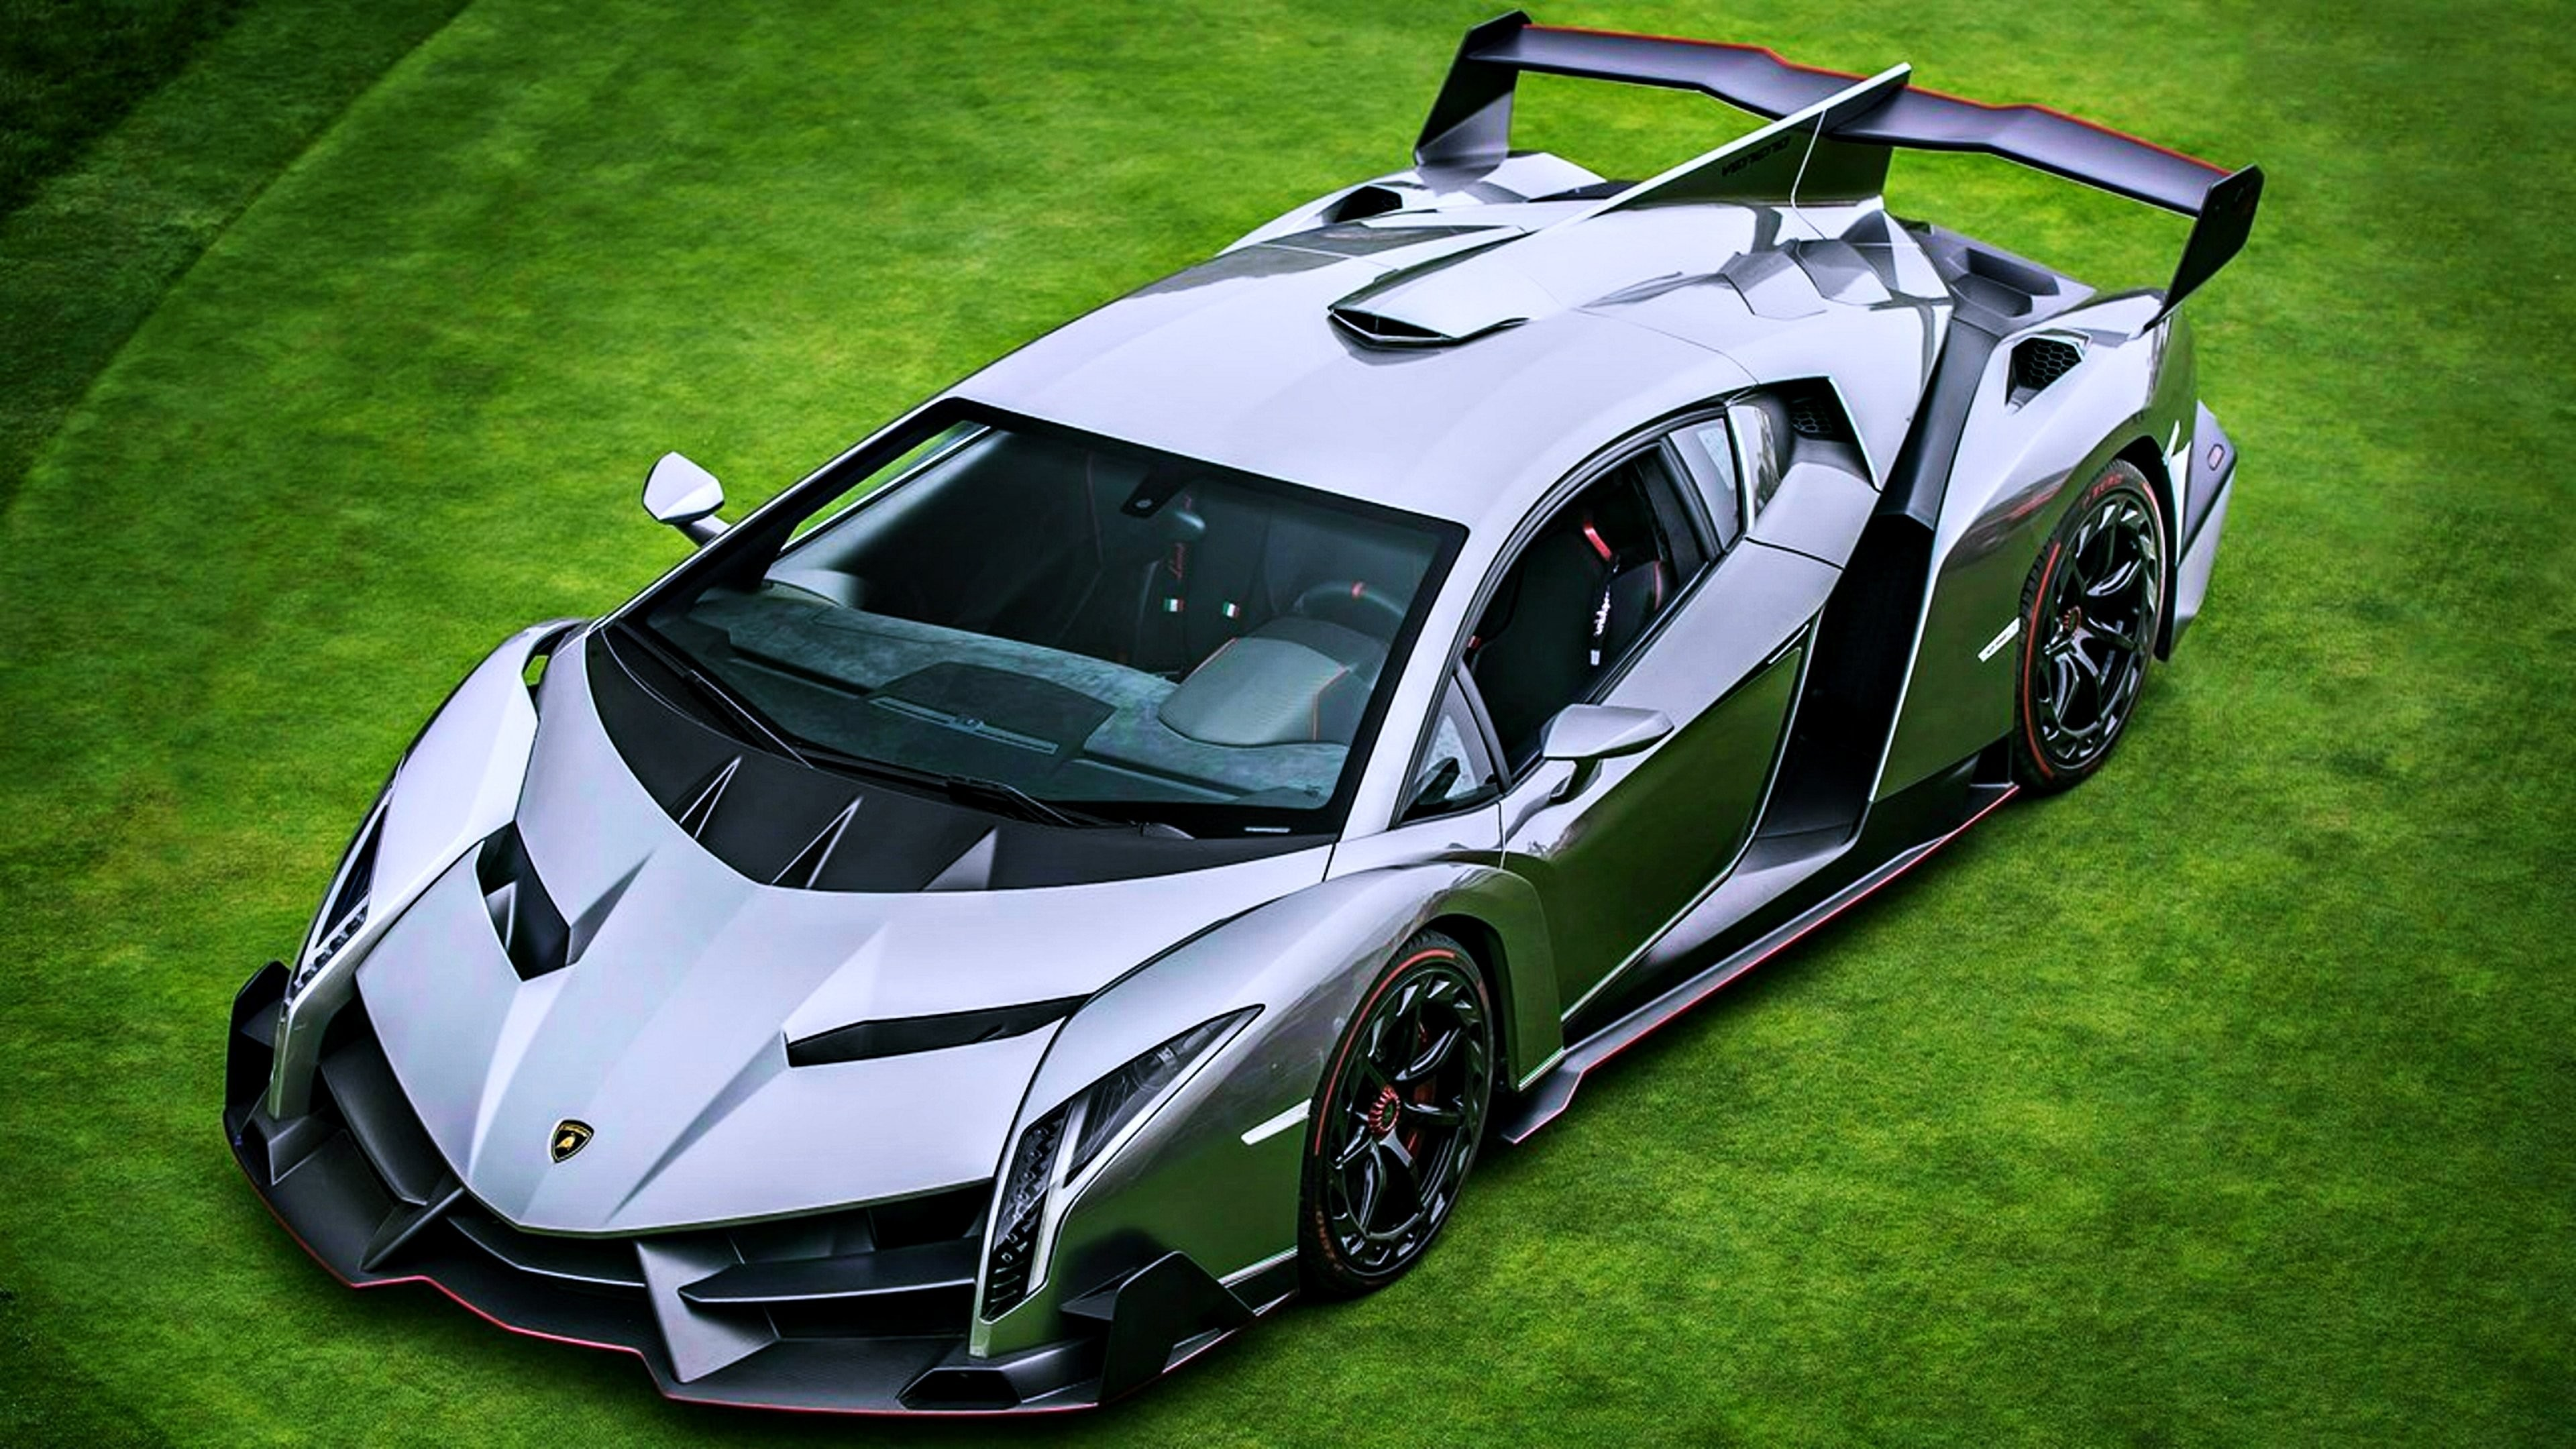 Wallpaper lamborghini veneno supercar concept car cars - Best wallpapers of cars and bikes ...